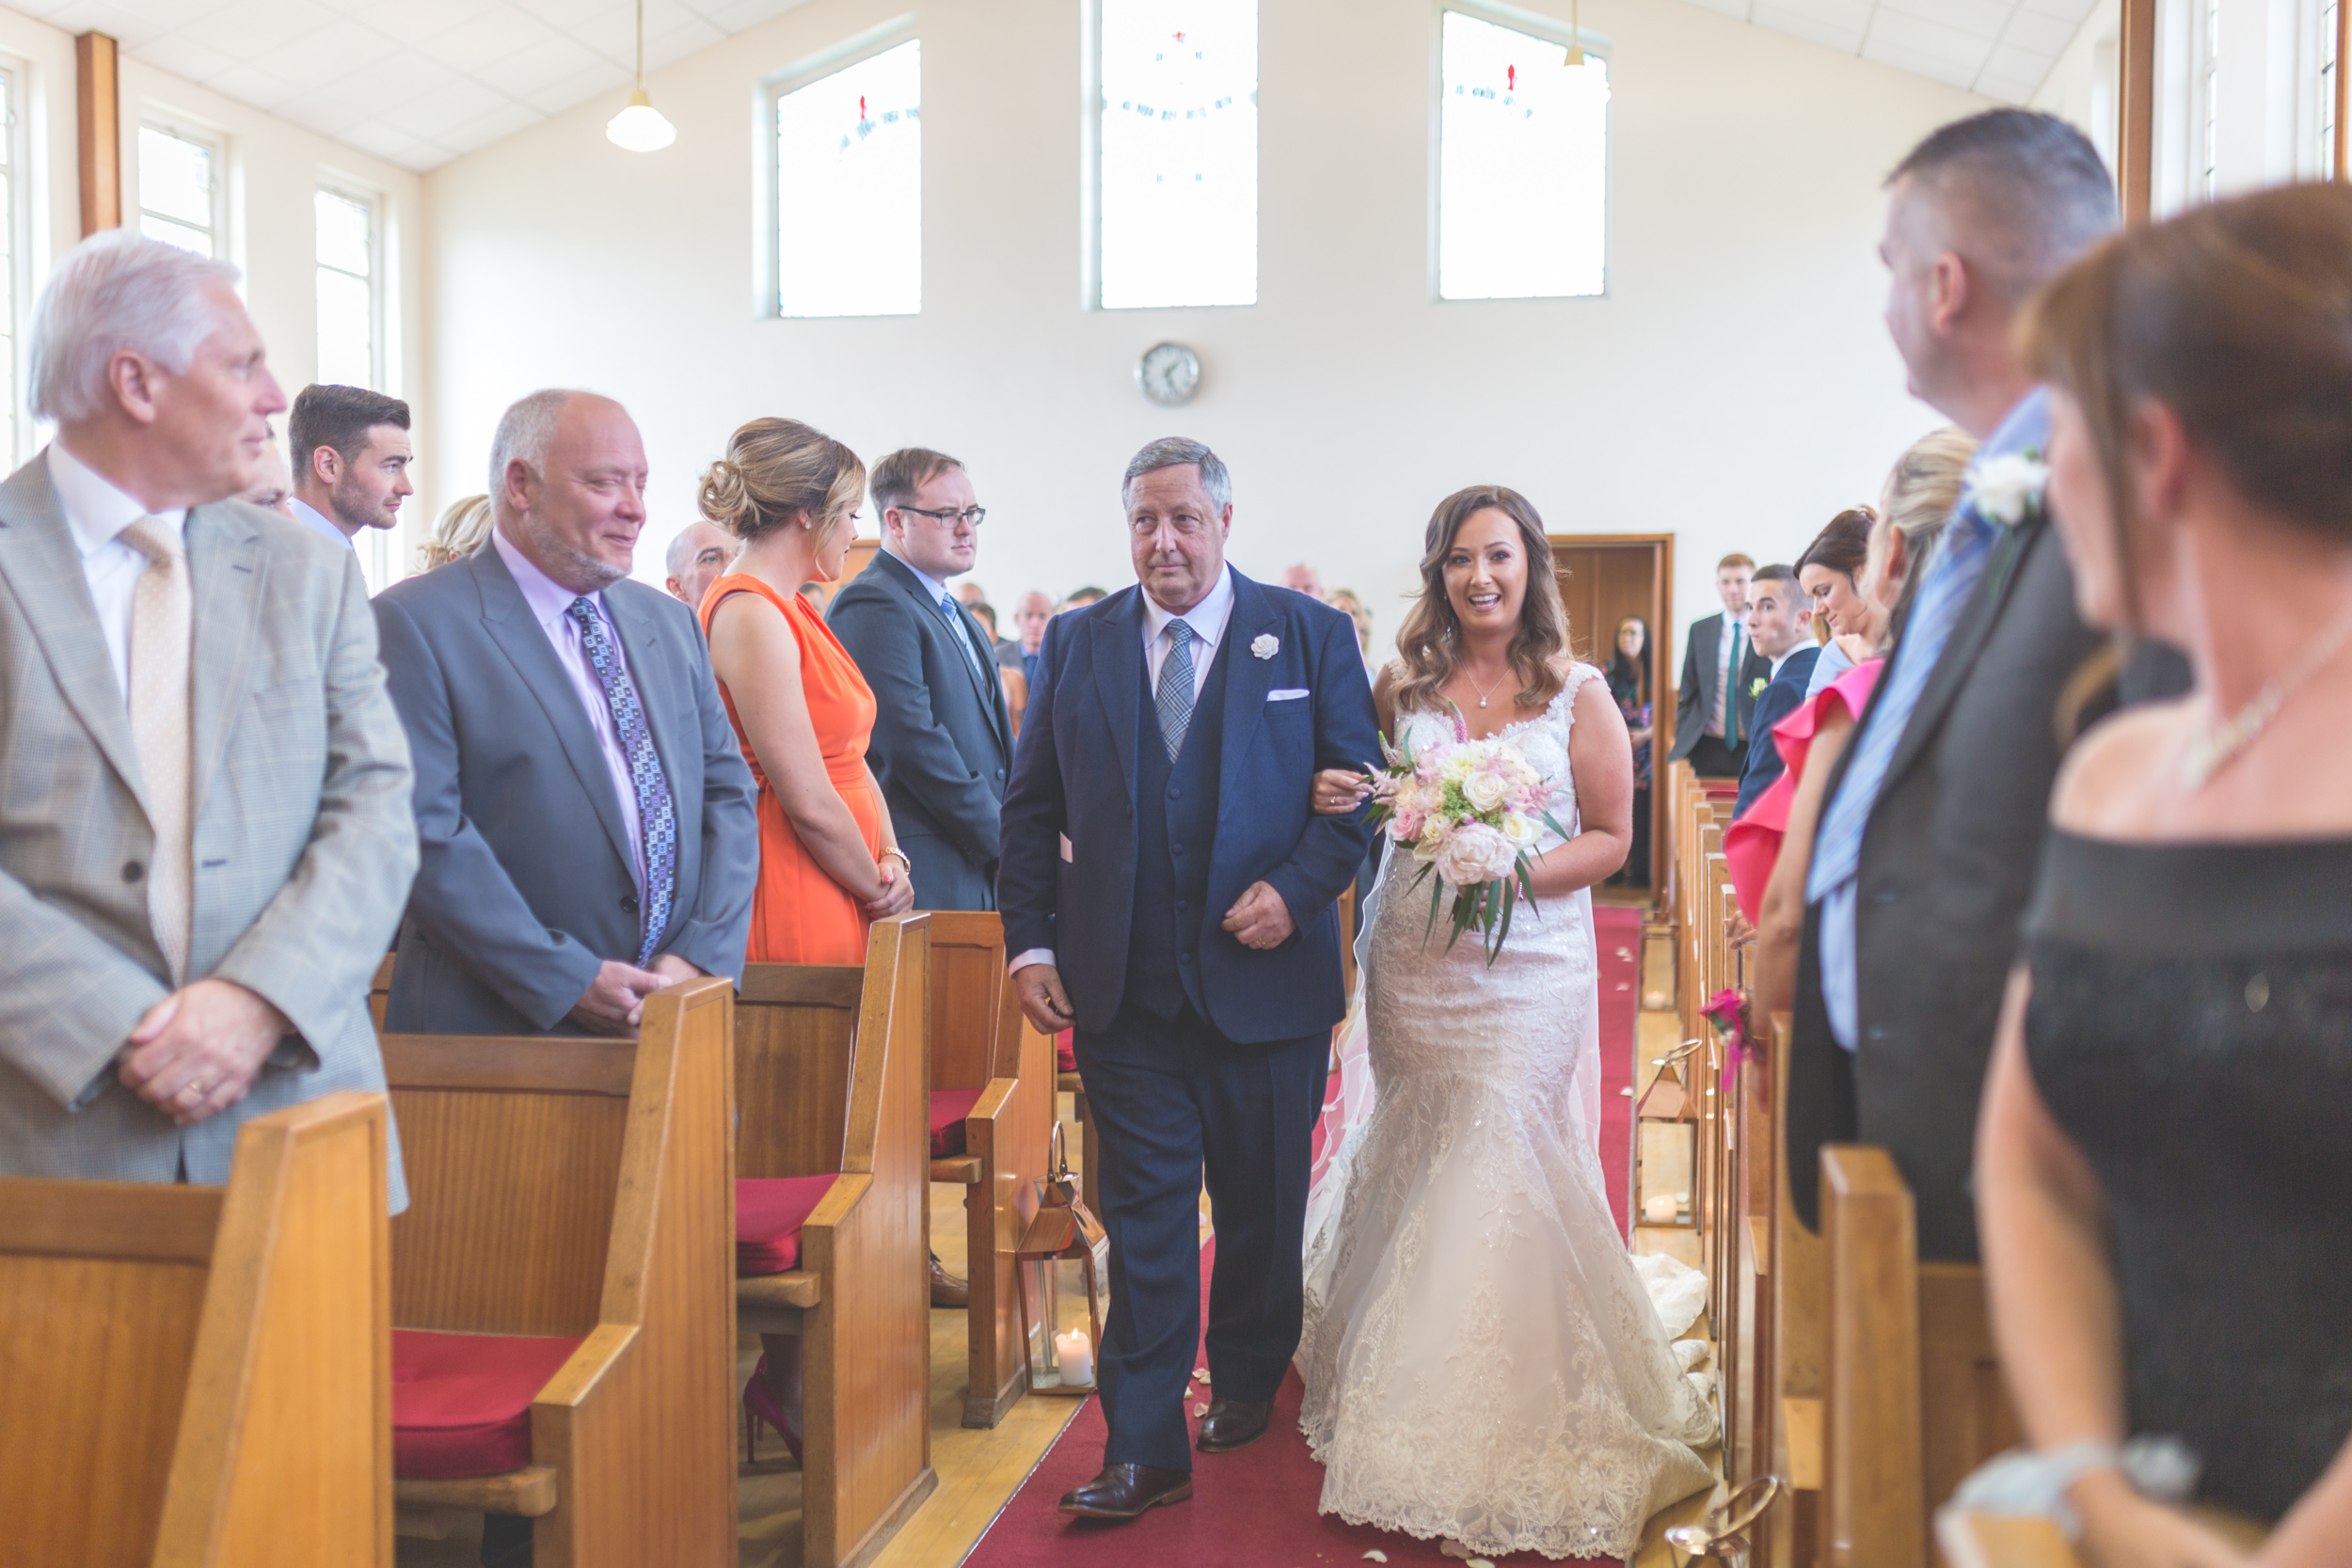 Brian McEwan | Northern Ireland Wedding Photographer | Rebecca & Michael | Ceremony-19.jpg